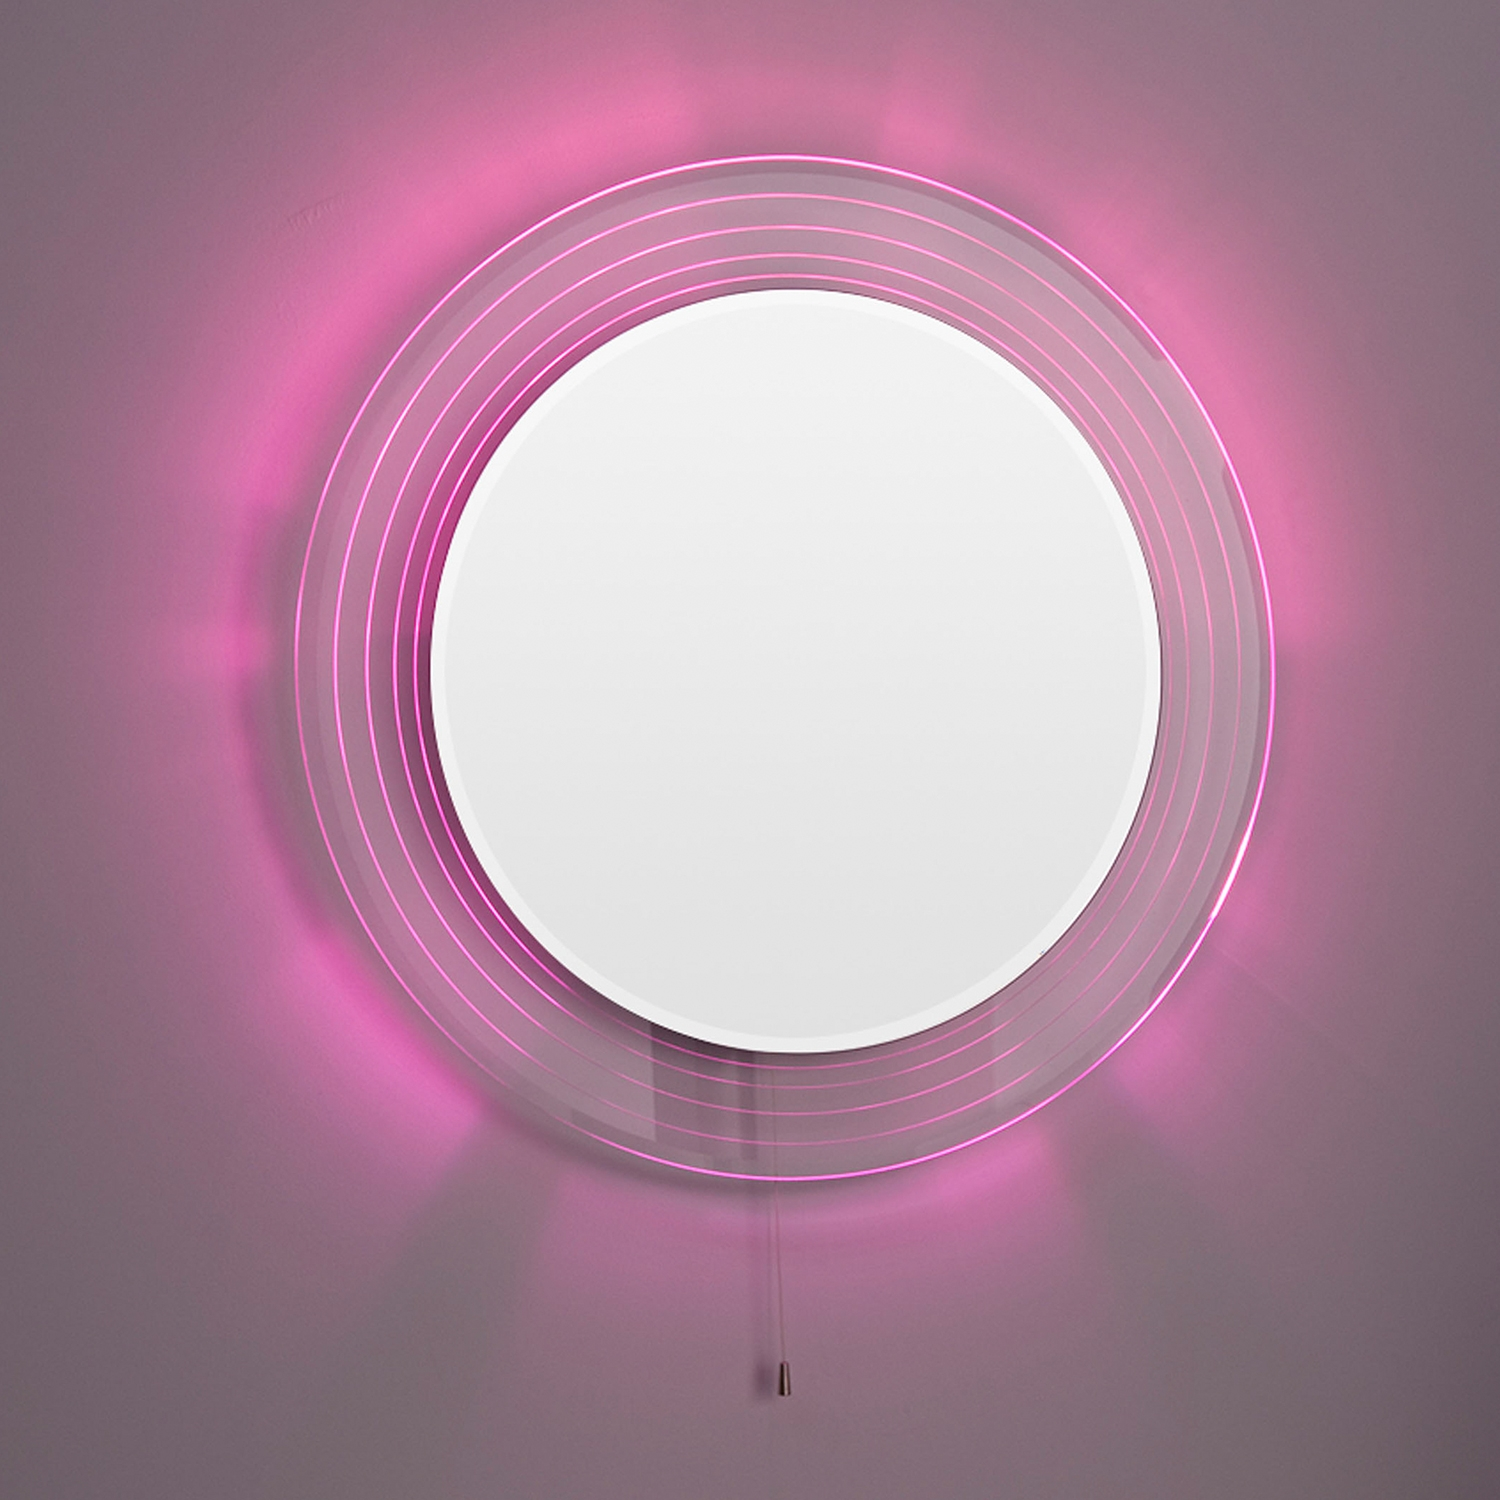 Premier Orpheus Colour Changing Bathroom Mirror, 600mm Diameter, Stainless Steel-2